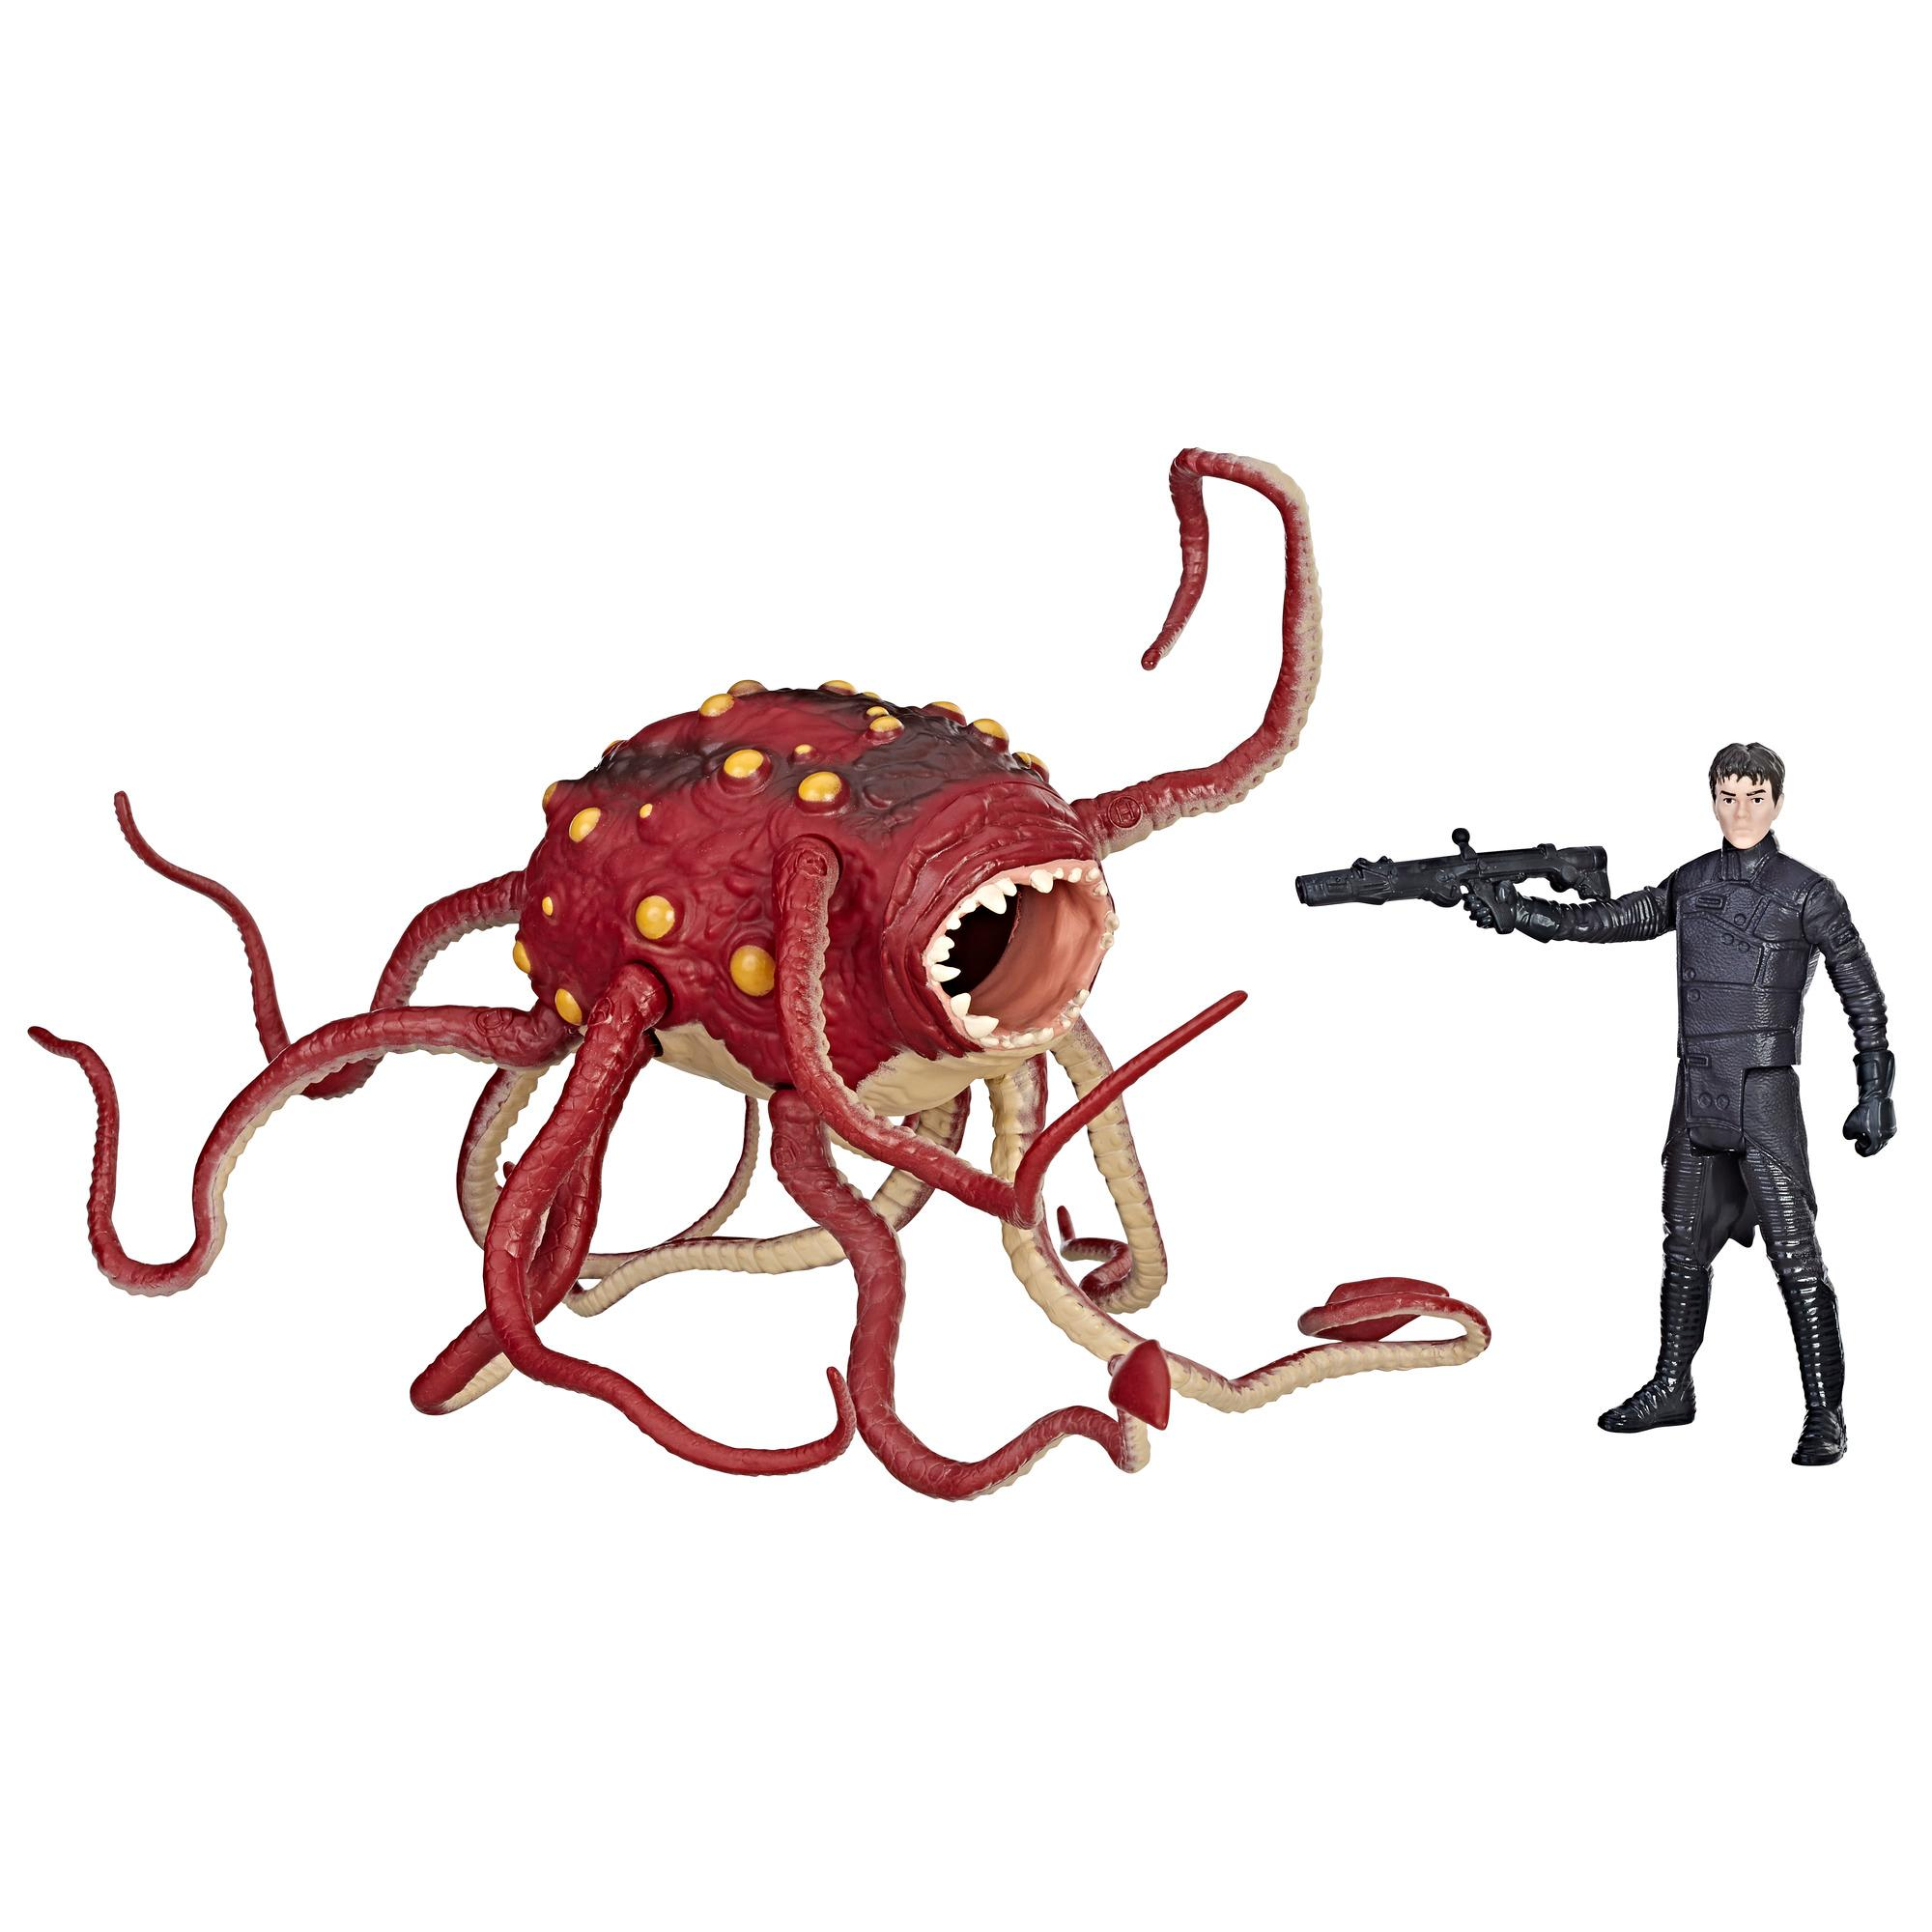 Star Wars Force Link Rathtar & Bala-Tik Figure